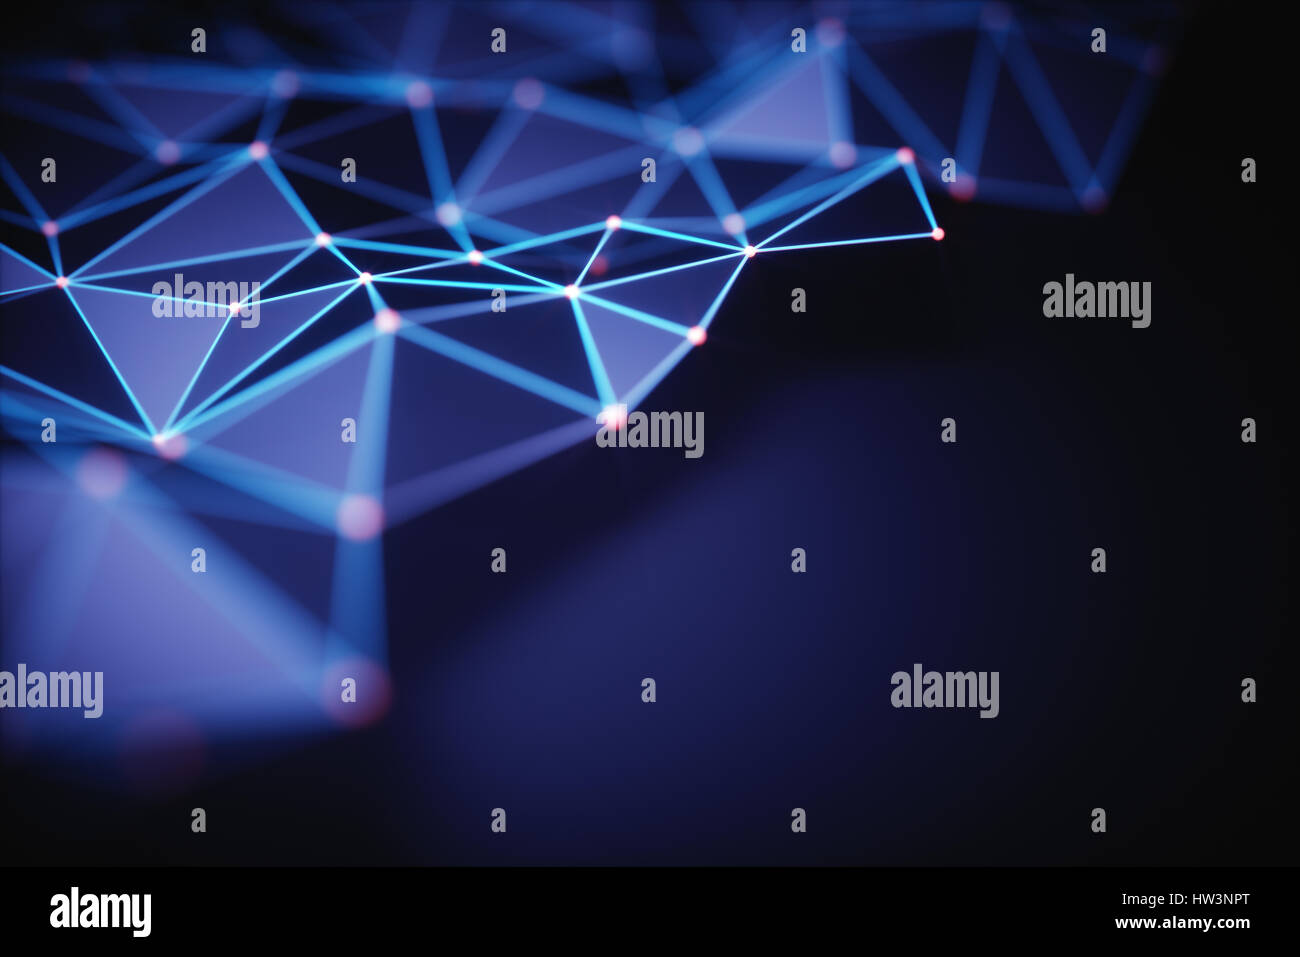 3D illustration. Abstract background, connection and lines of technology. Stock Photo